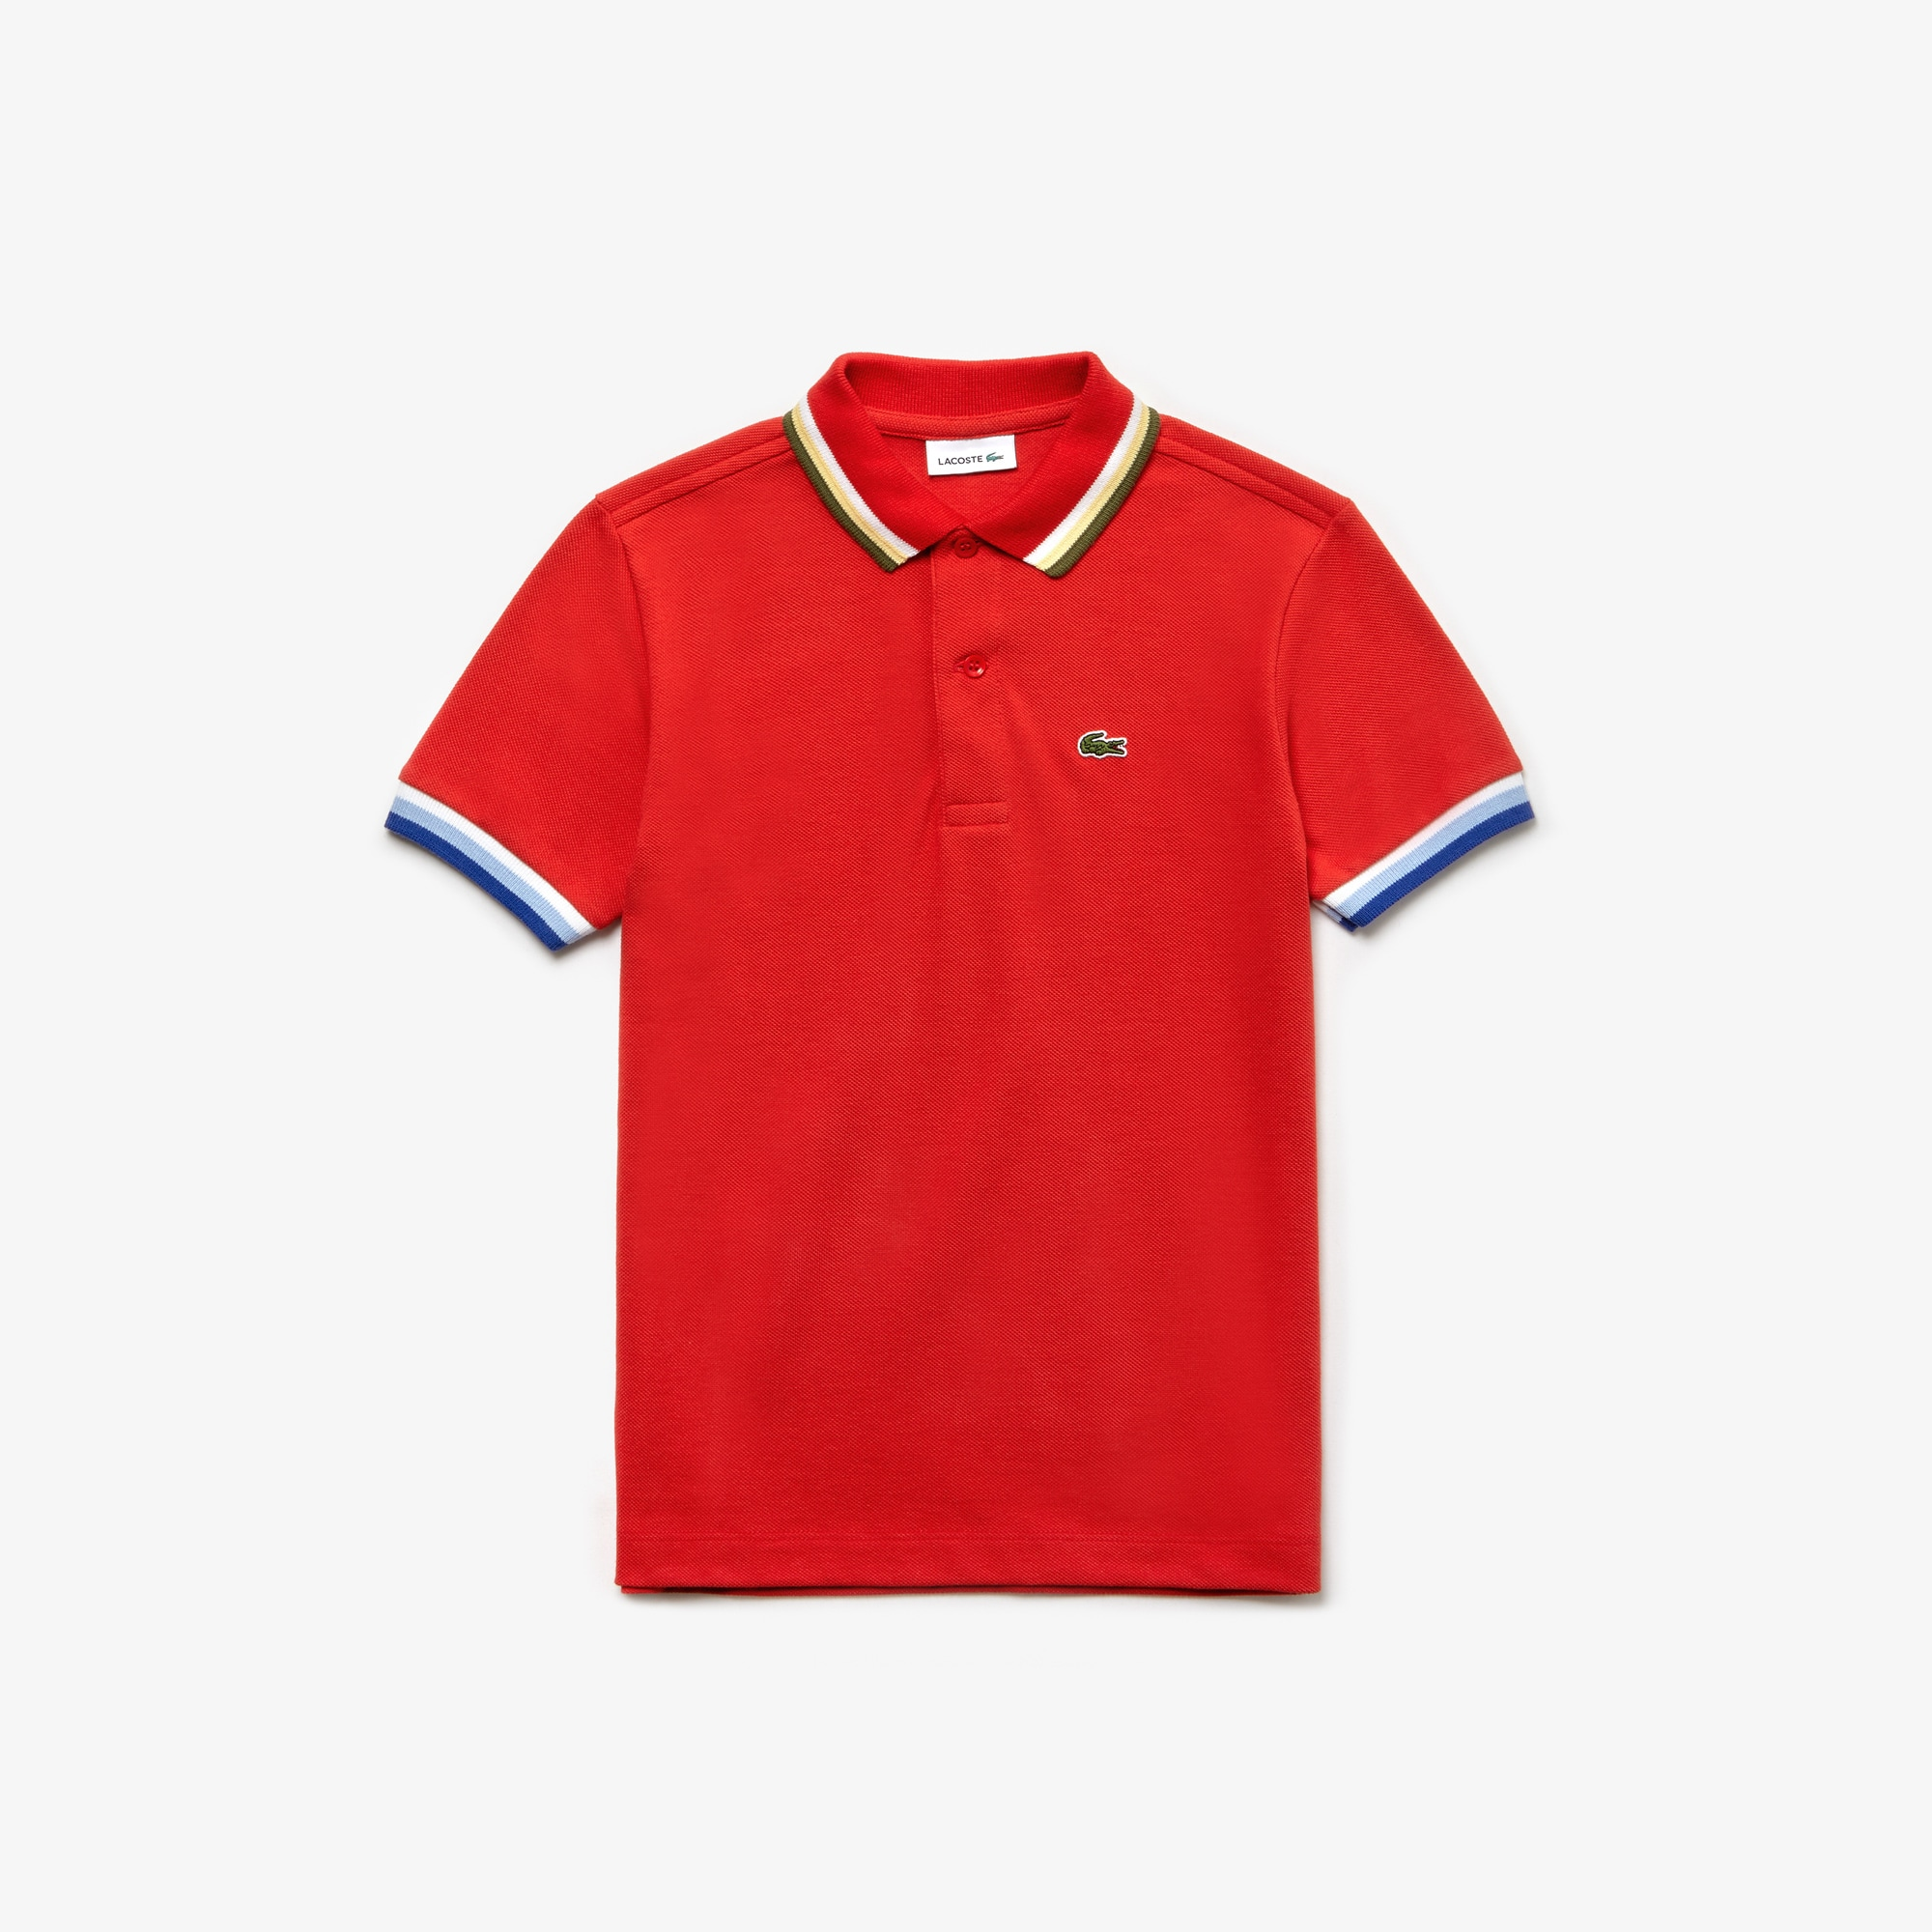 7650e184b Striped Cotton Polo Shirt Source · Boys poloshirts LACOSTE